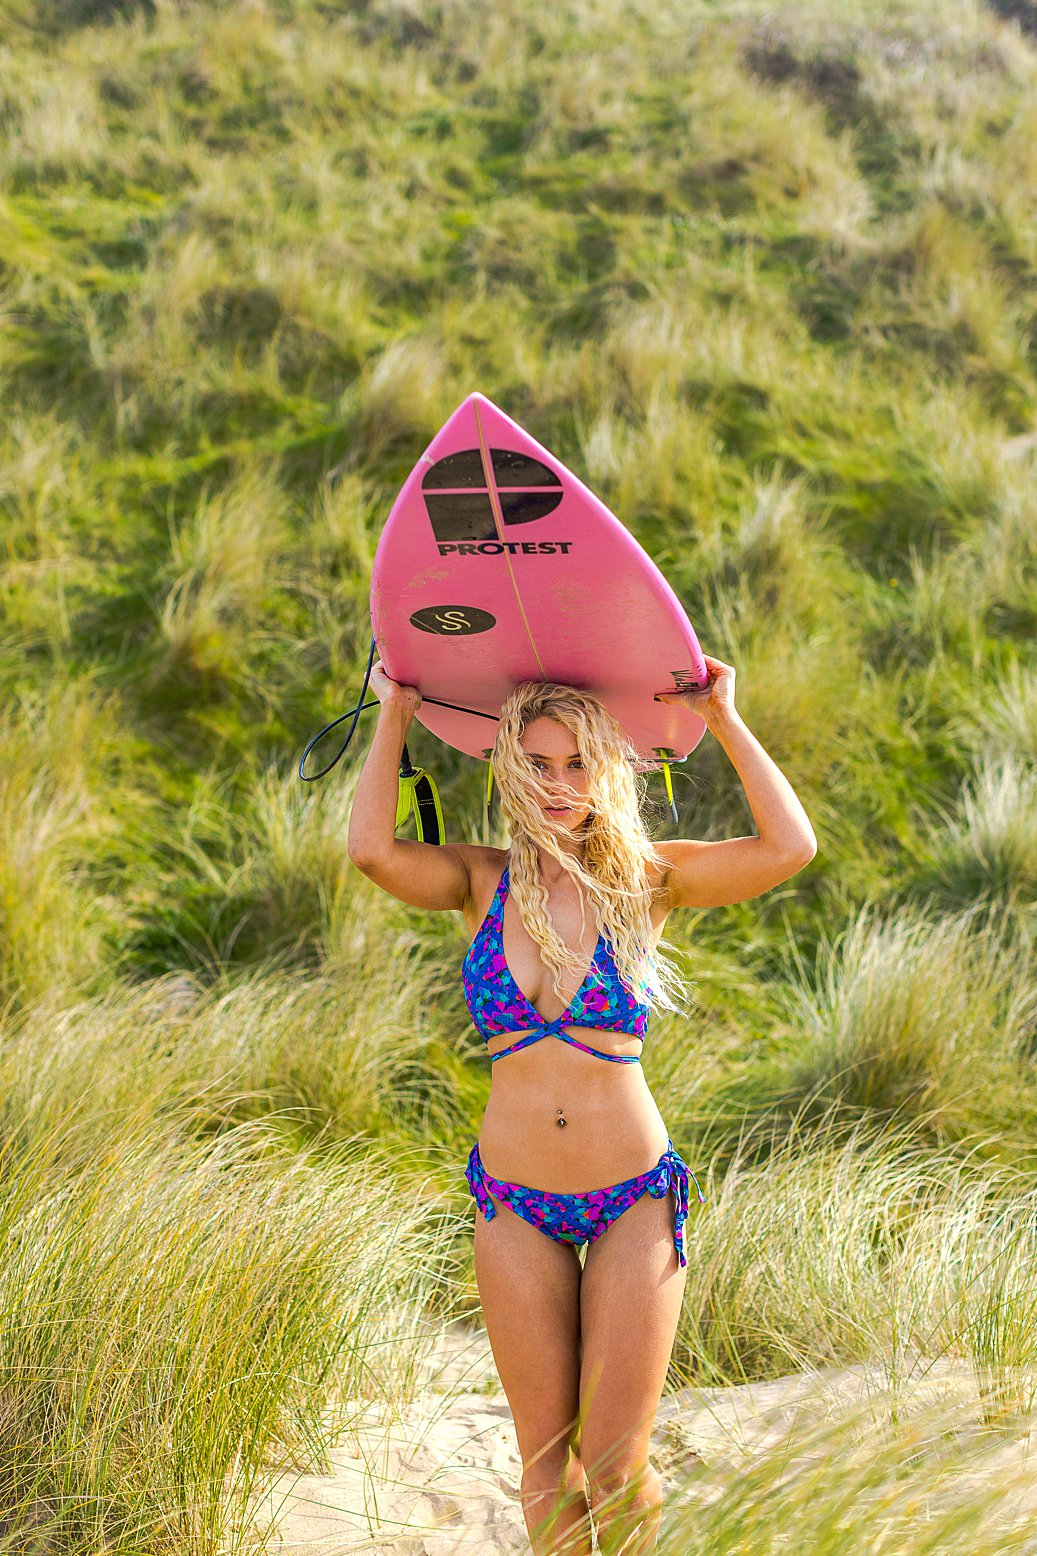 Lifestyle photography & content creation for Thrive Swimwear. Product photography & styling by Marianne Taylor. Model Lucie Rose Donlan.